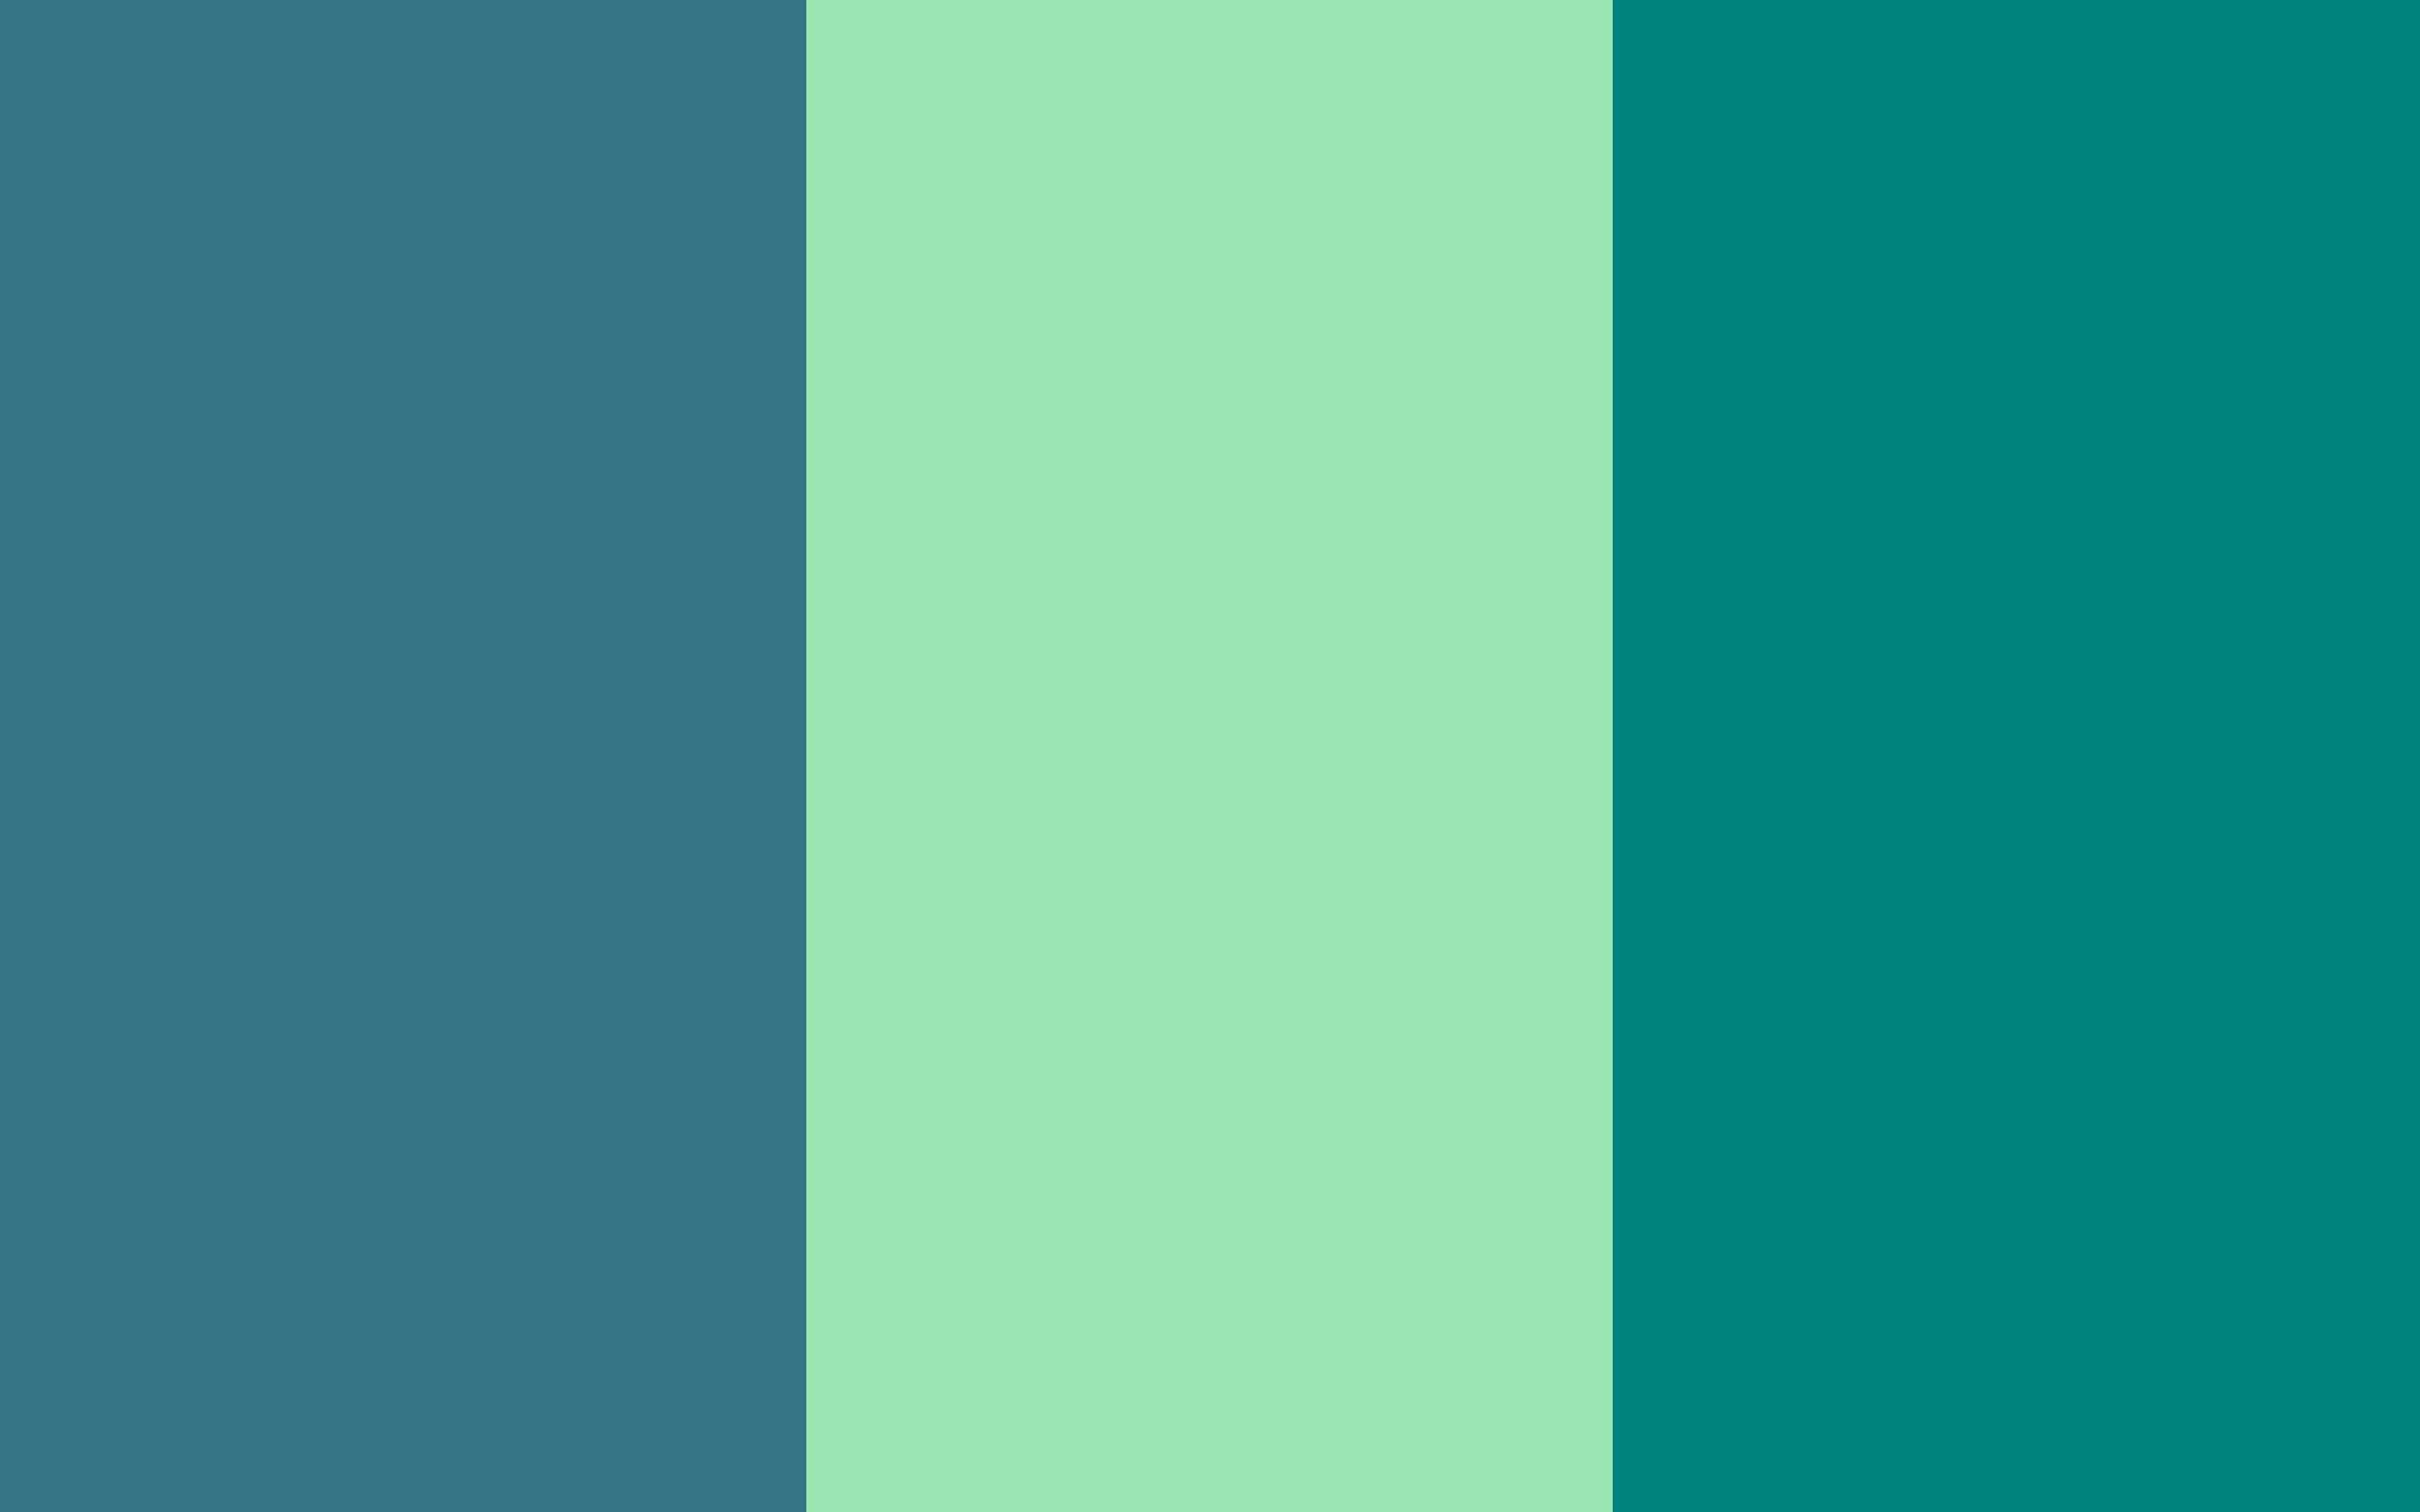 Teal Blue Deer Green Three Color